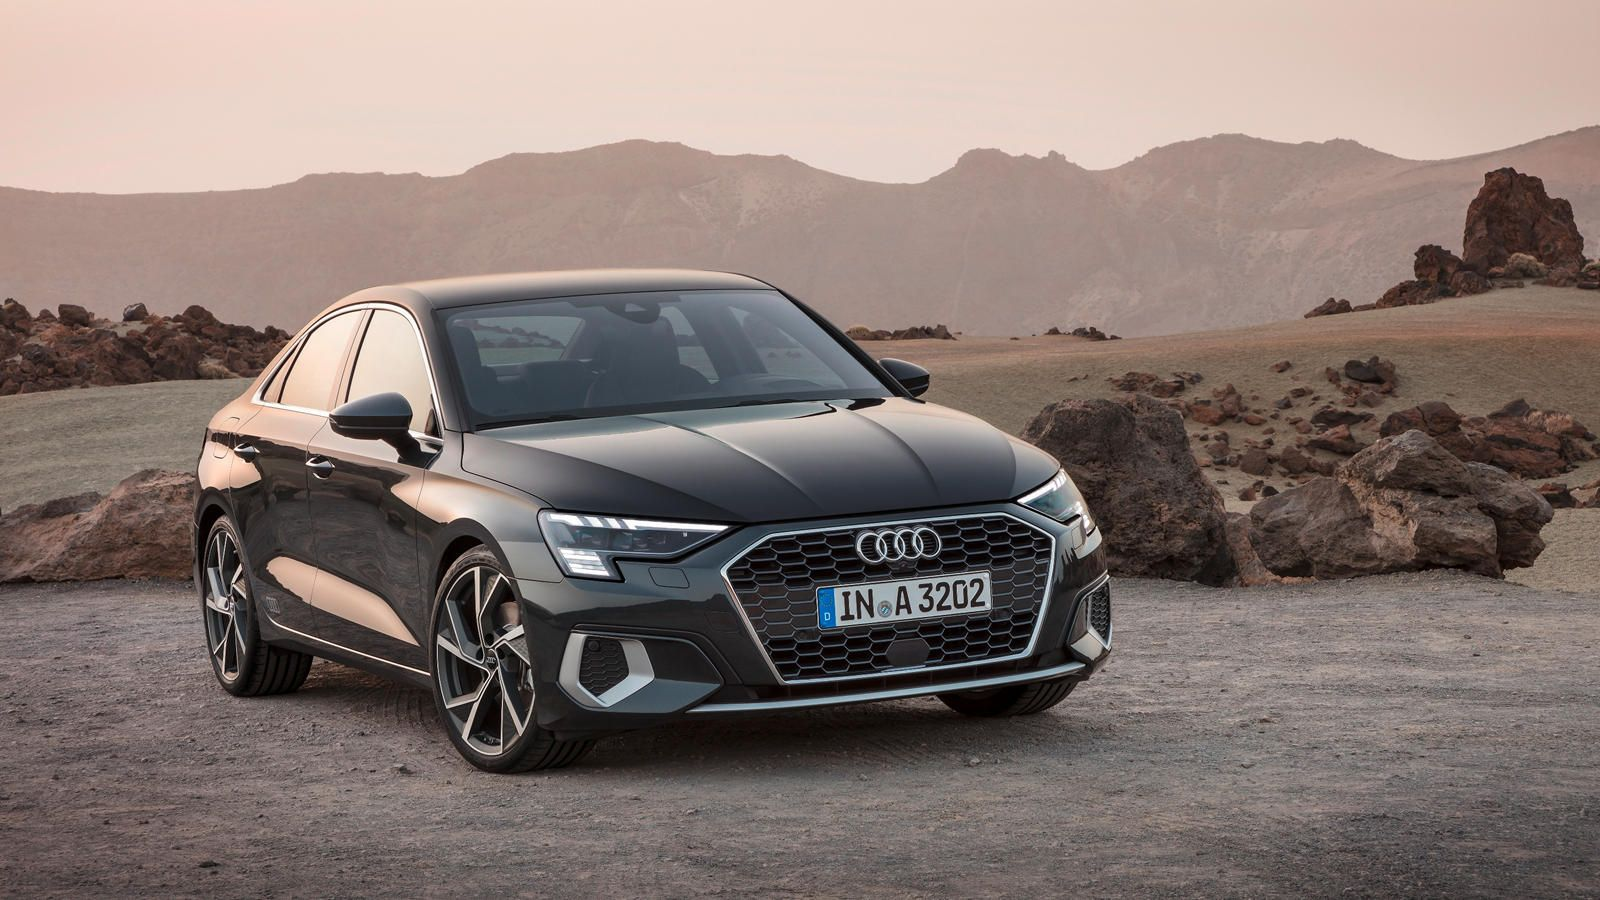 2021 Audi A3 Sedan First Look Review Sub Compact Luxury At Its Best Audi Is Ready To Take On Bmw And Mercedes In 2020 Audi A3 Sedan Audi Audi A3